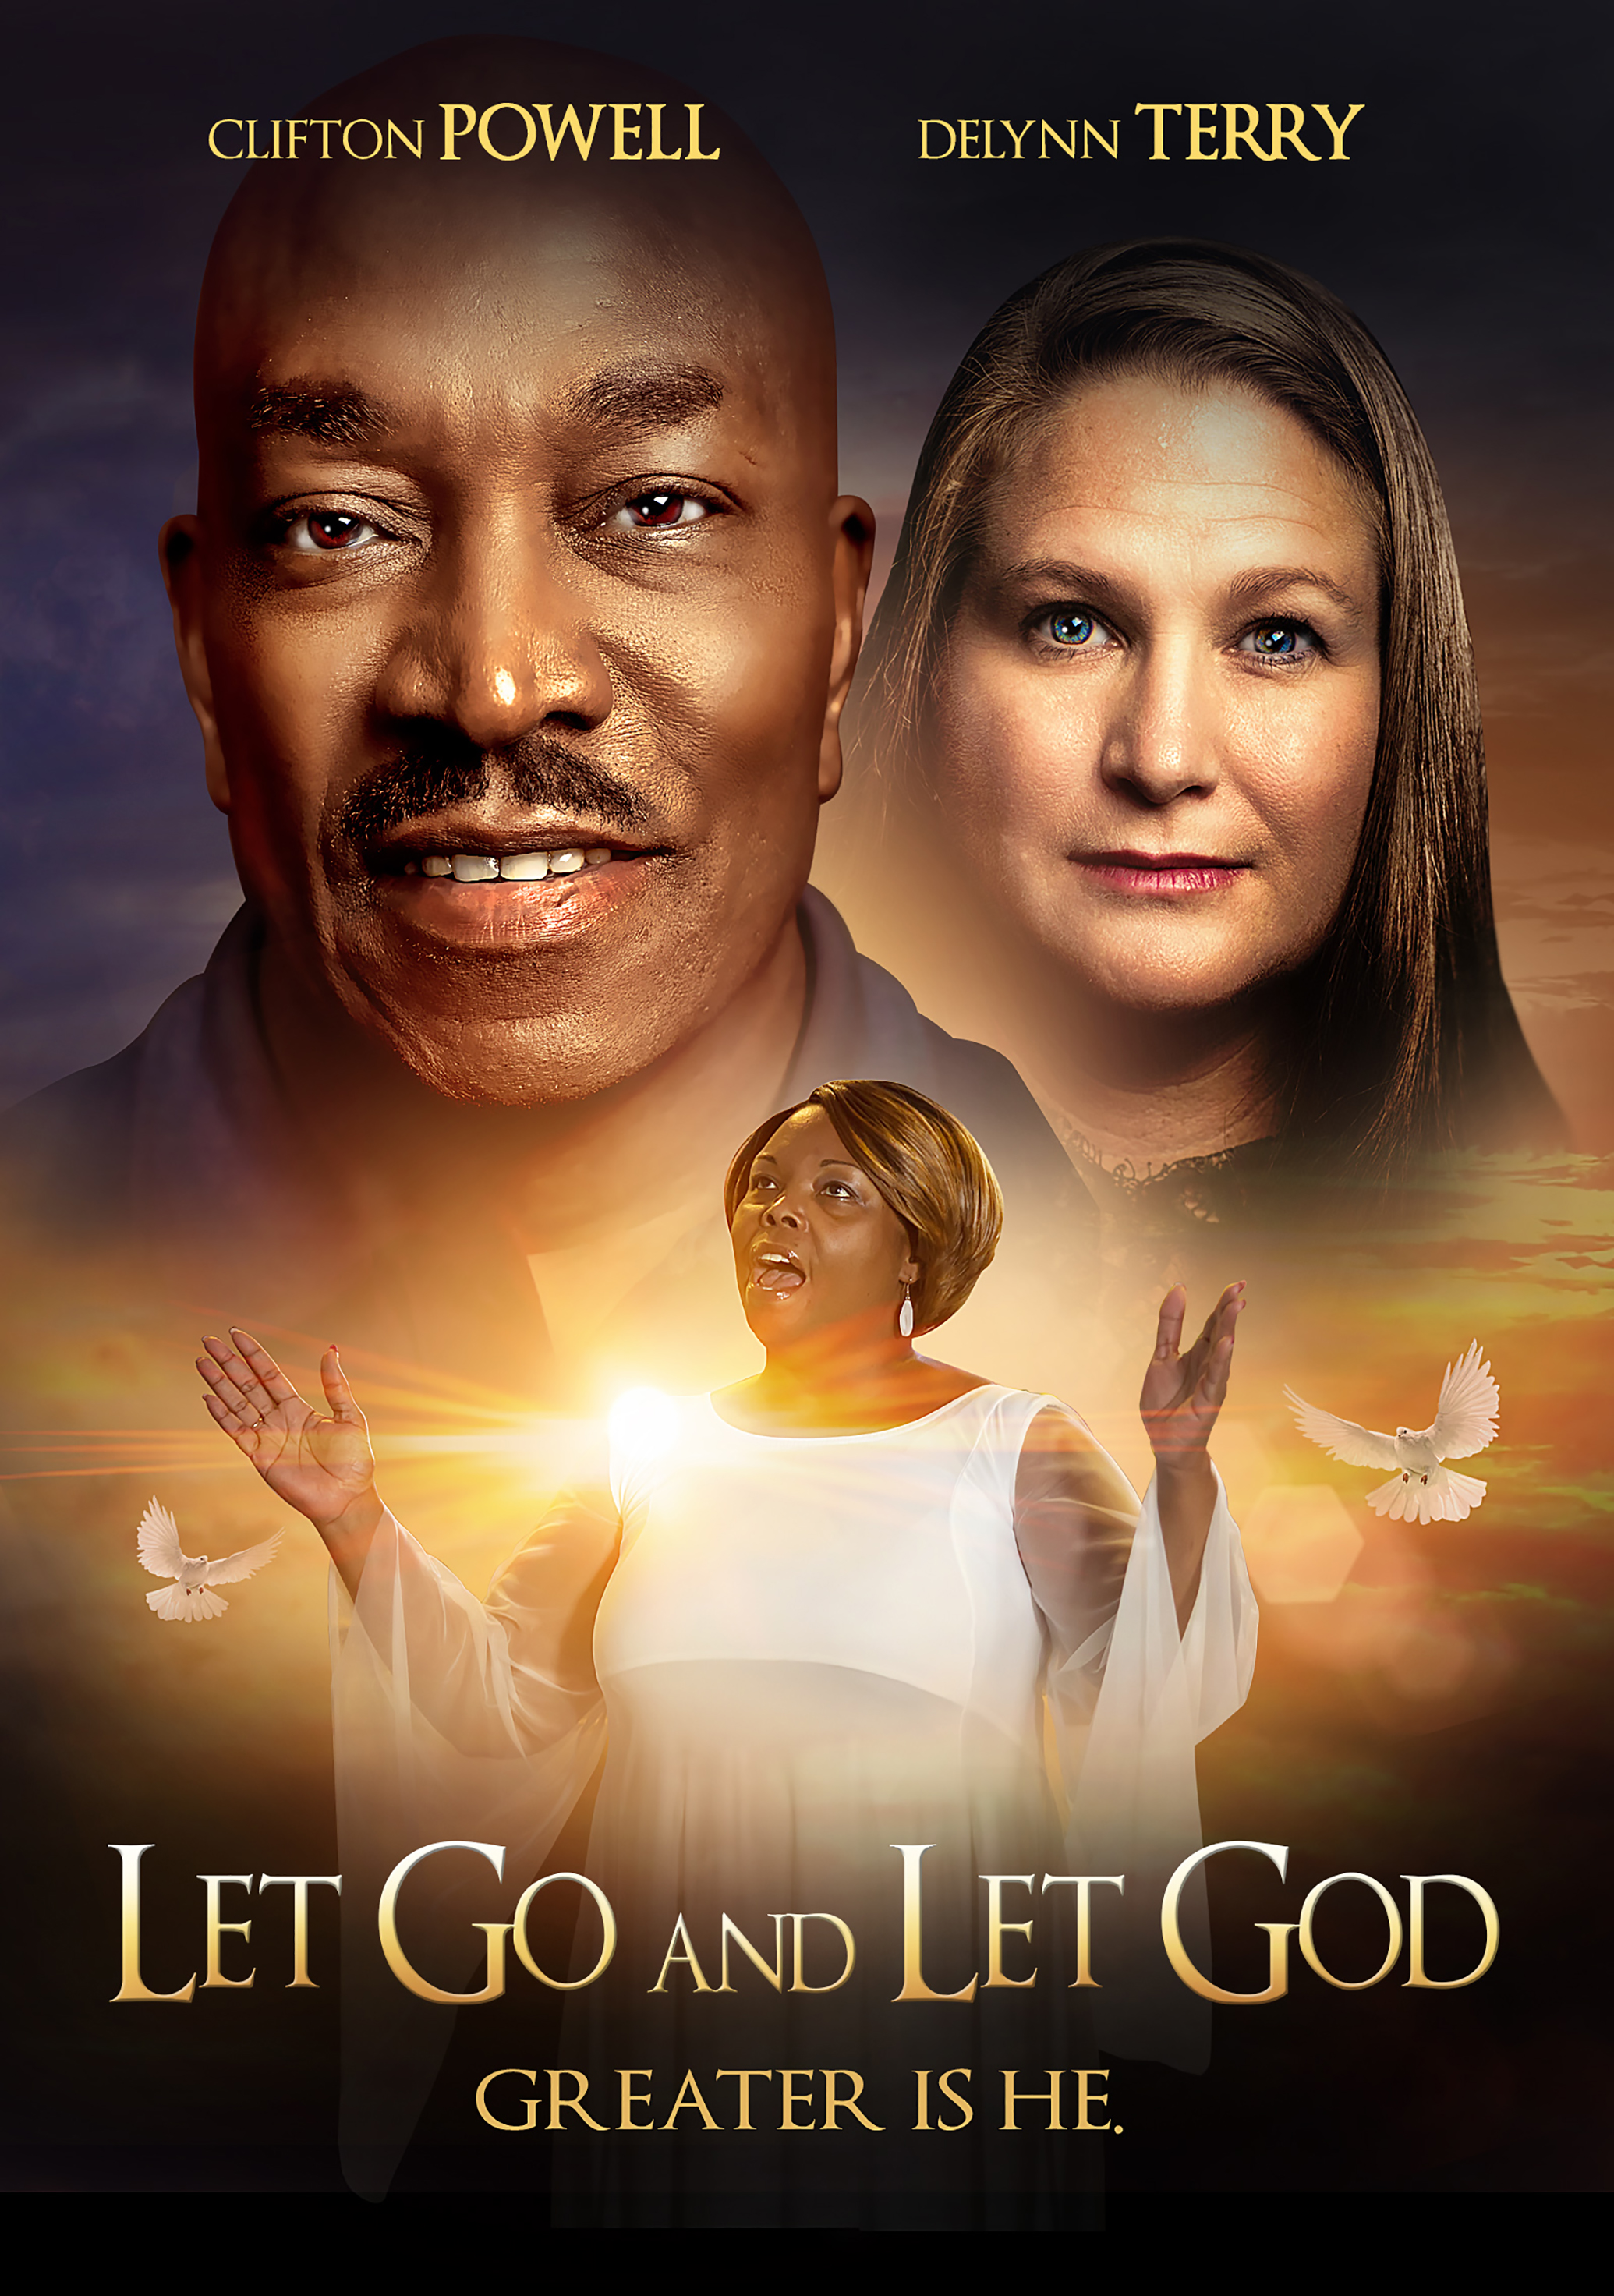 let-go-and-let-god new poster.jpg